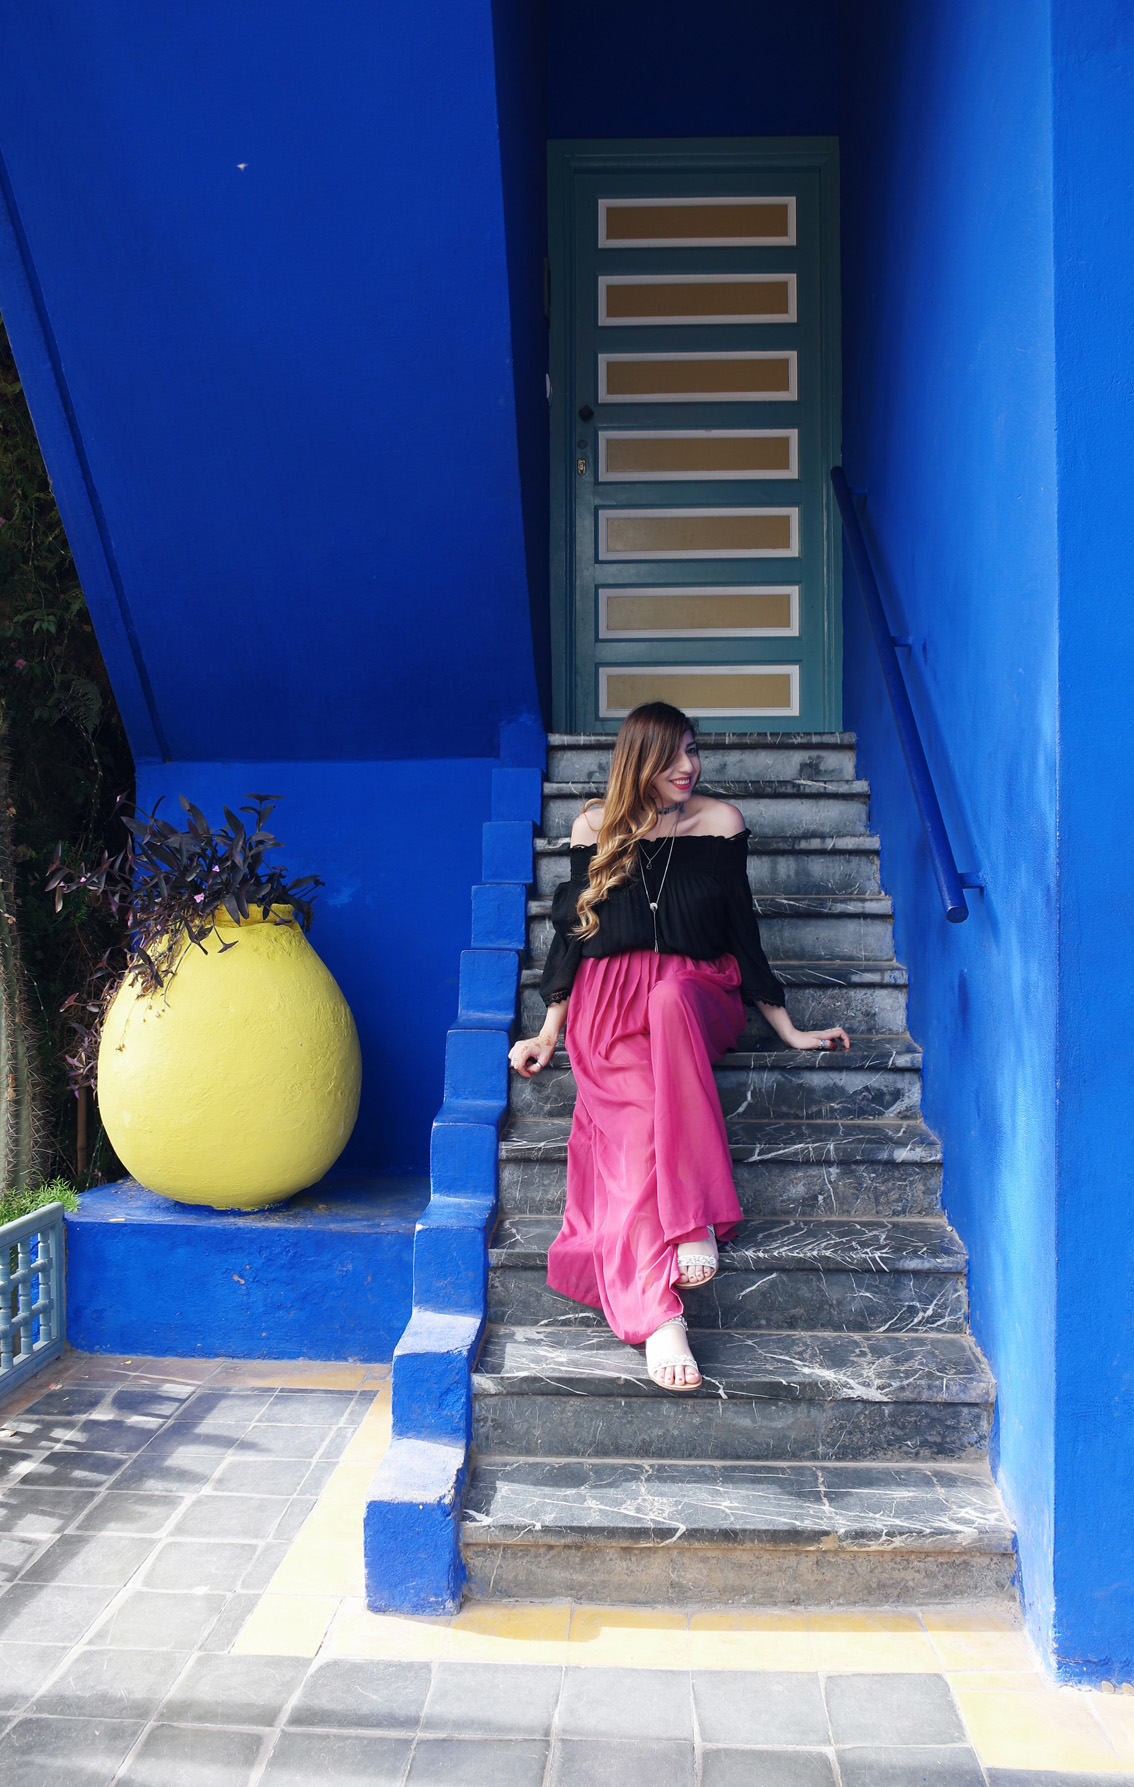 11 Jardin Majorelle - a magical place in Marrakech.